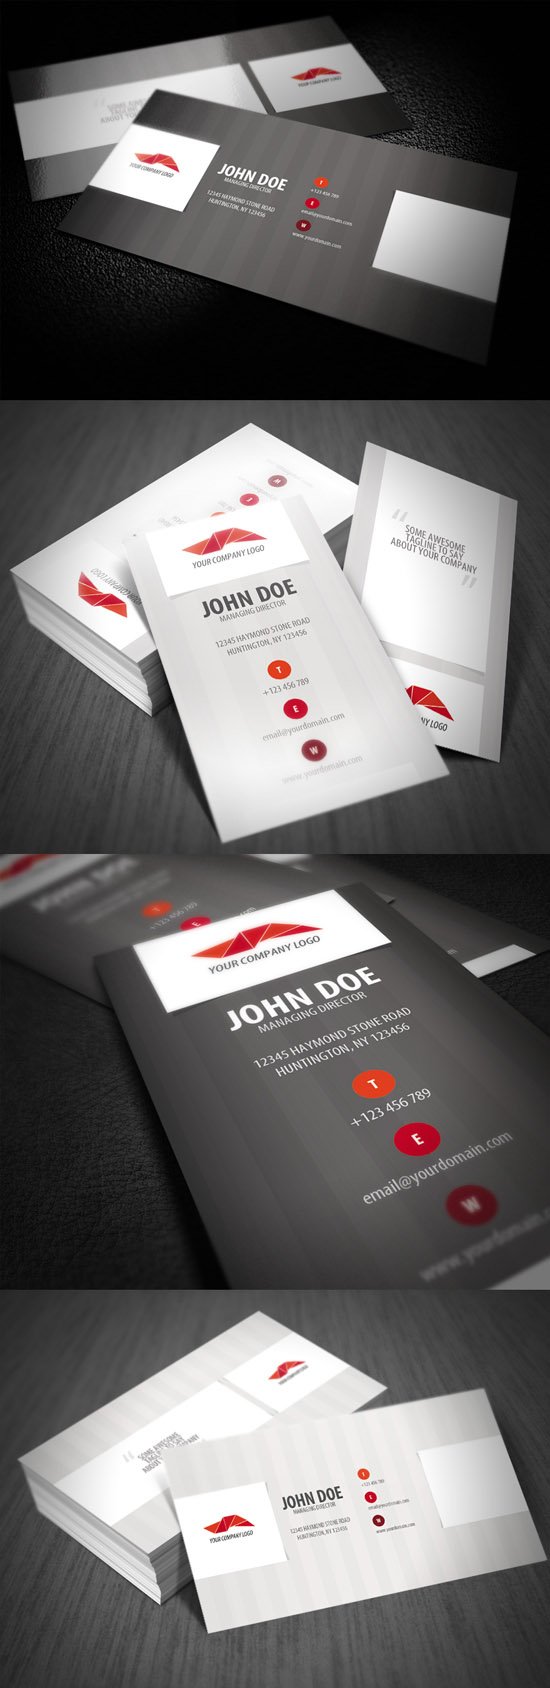 Business Card 17 Showcase Of Innovative Business Card Designs